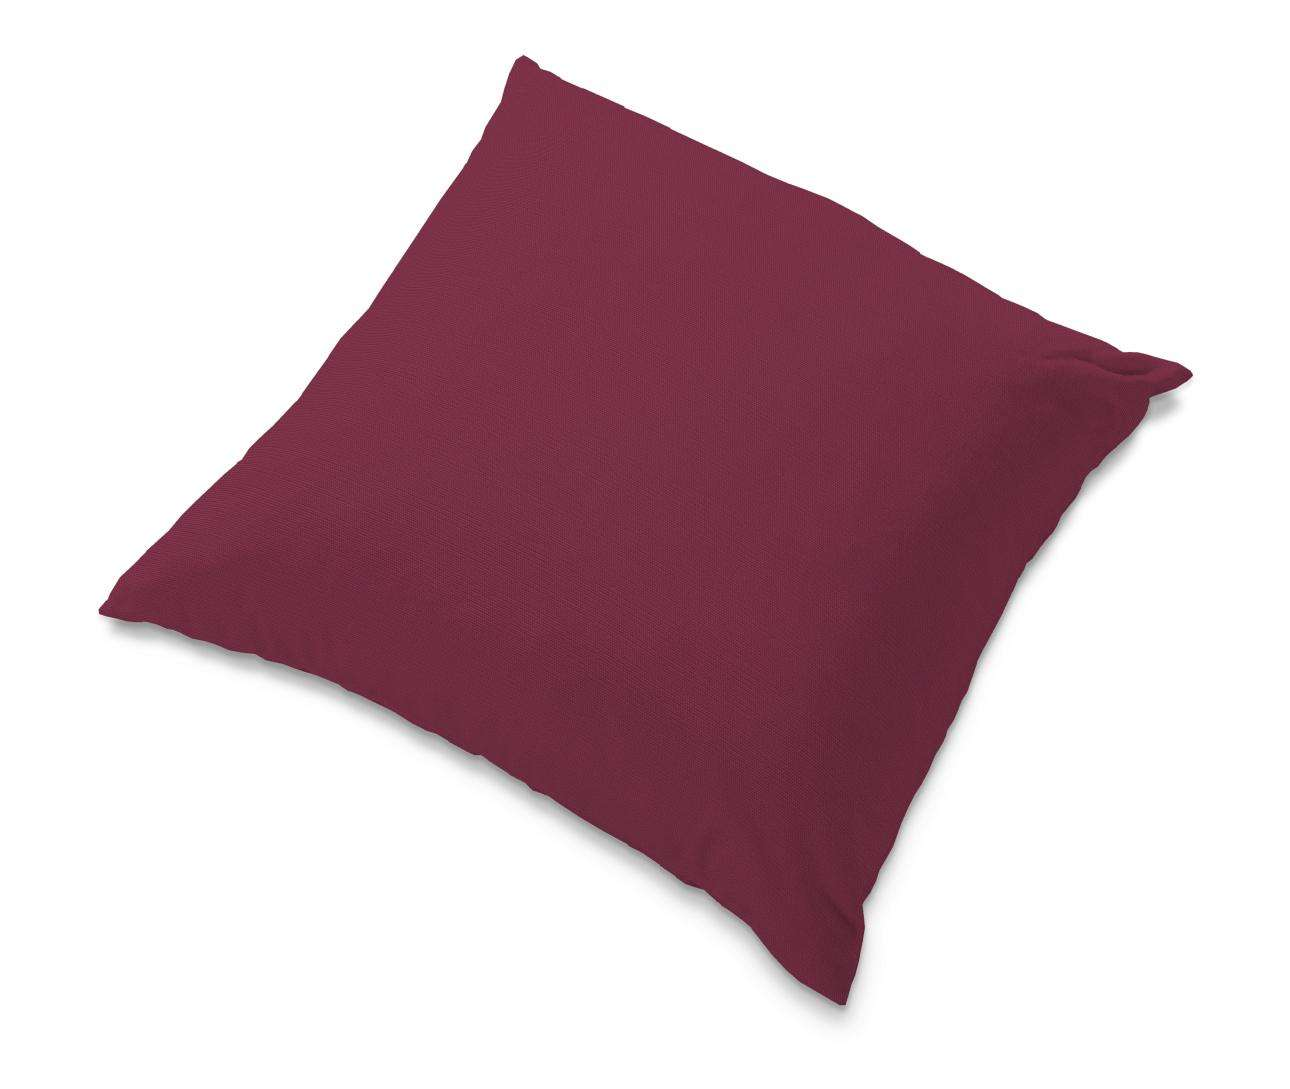 Tomelilla cushion cover in collection Panama Cotton, fabric: 702-32